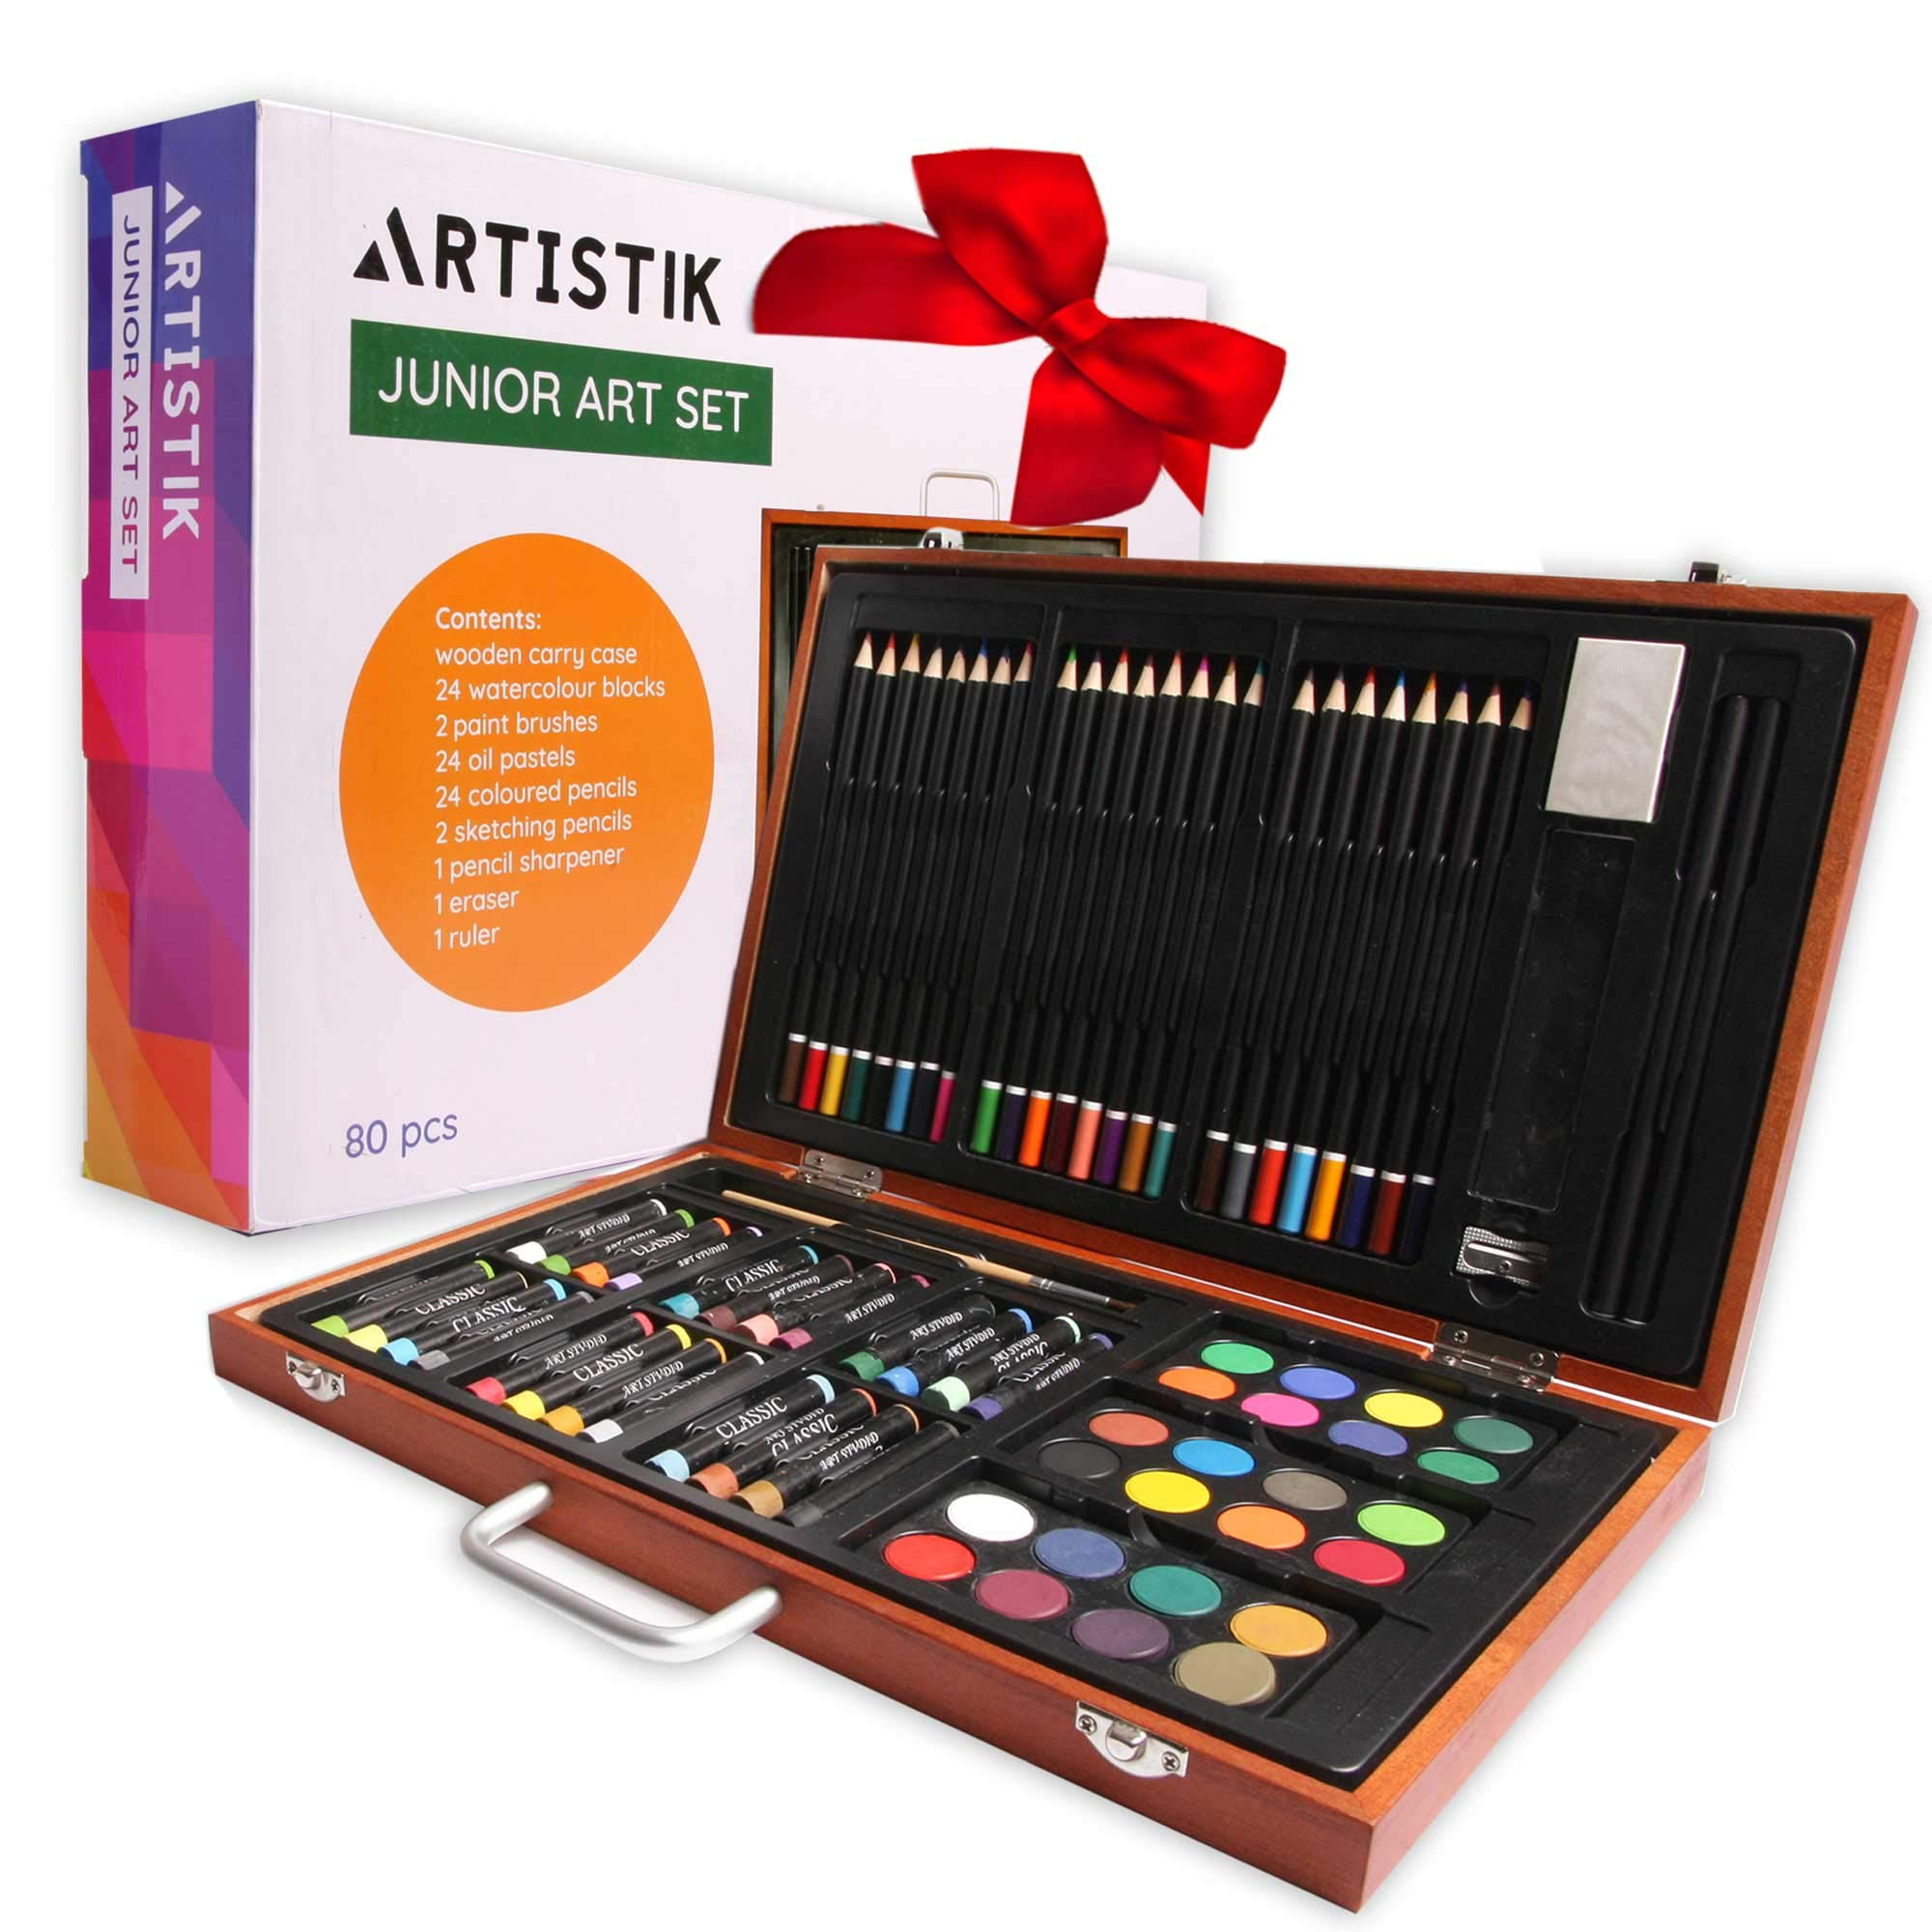 Wooden Art Set - (80 Piece) Deluxe Art Creativity Set and Professional Art Set Box for Coloring Beginners, Great Gift for Artists, Adults Teens, and Children by Artistik